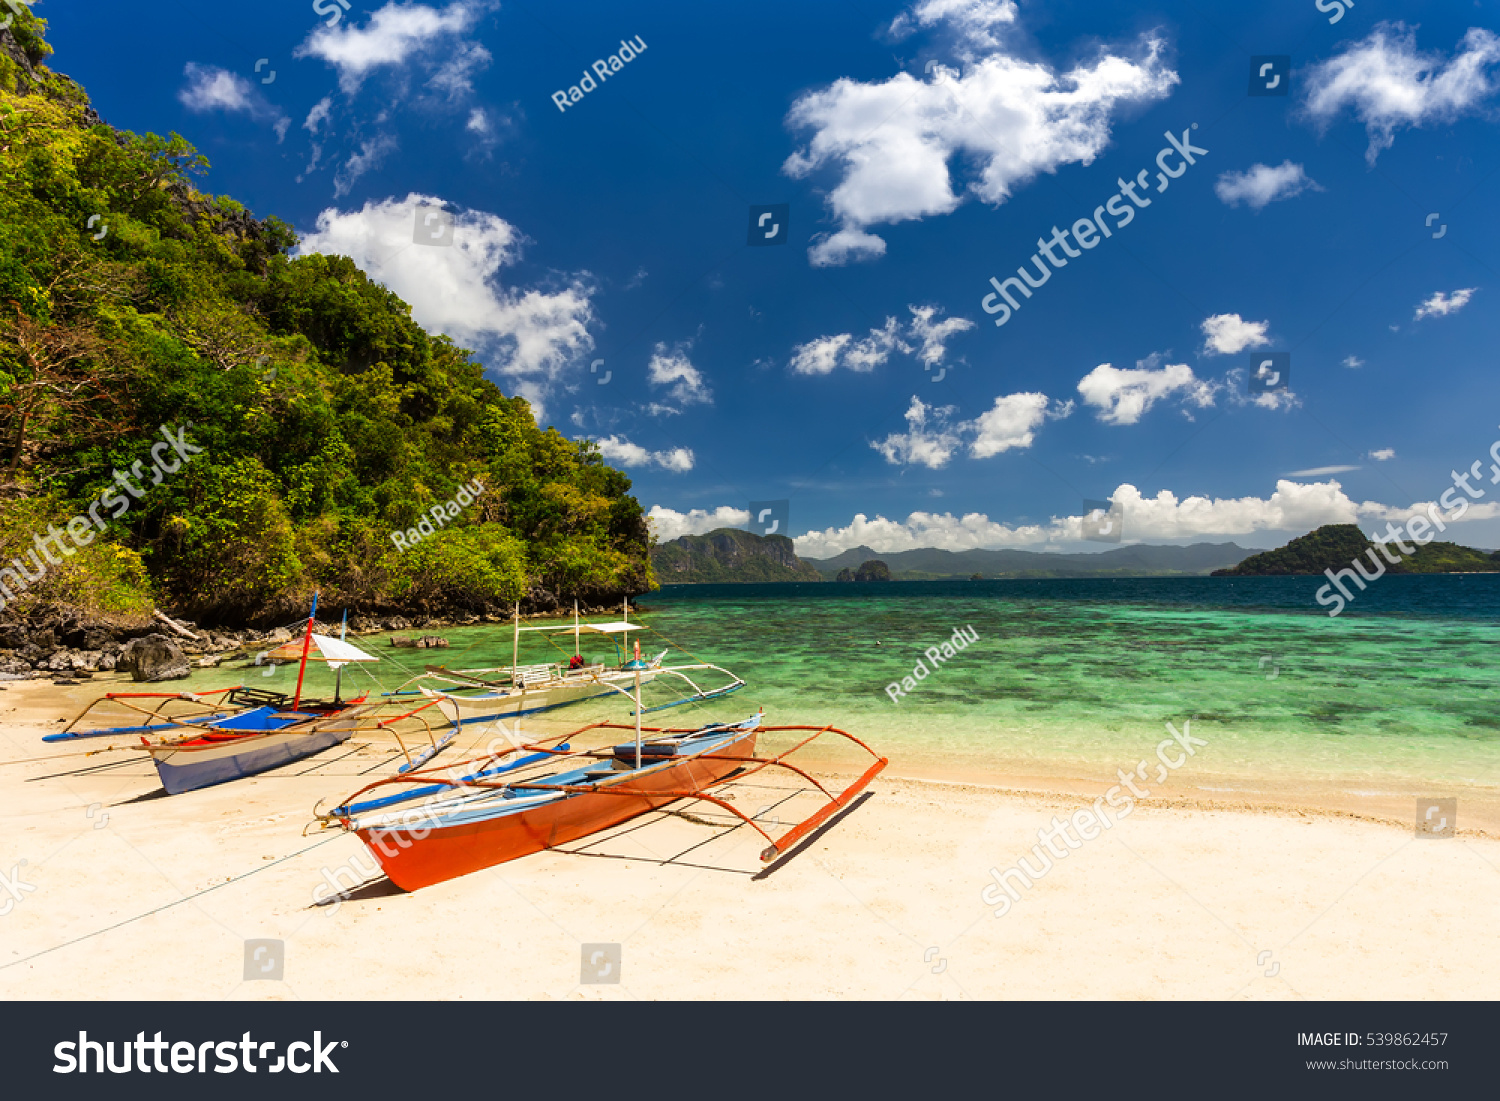 stock-photo-traditional-banca-boats-at-the-beach-near-cudugnon-cave-el-nido-palawan-island-philippines-539862457 - El Nido Beach in Palawan - Philippine Photo Gallery